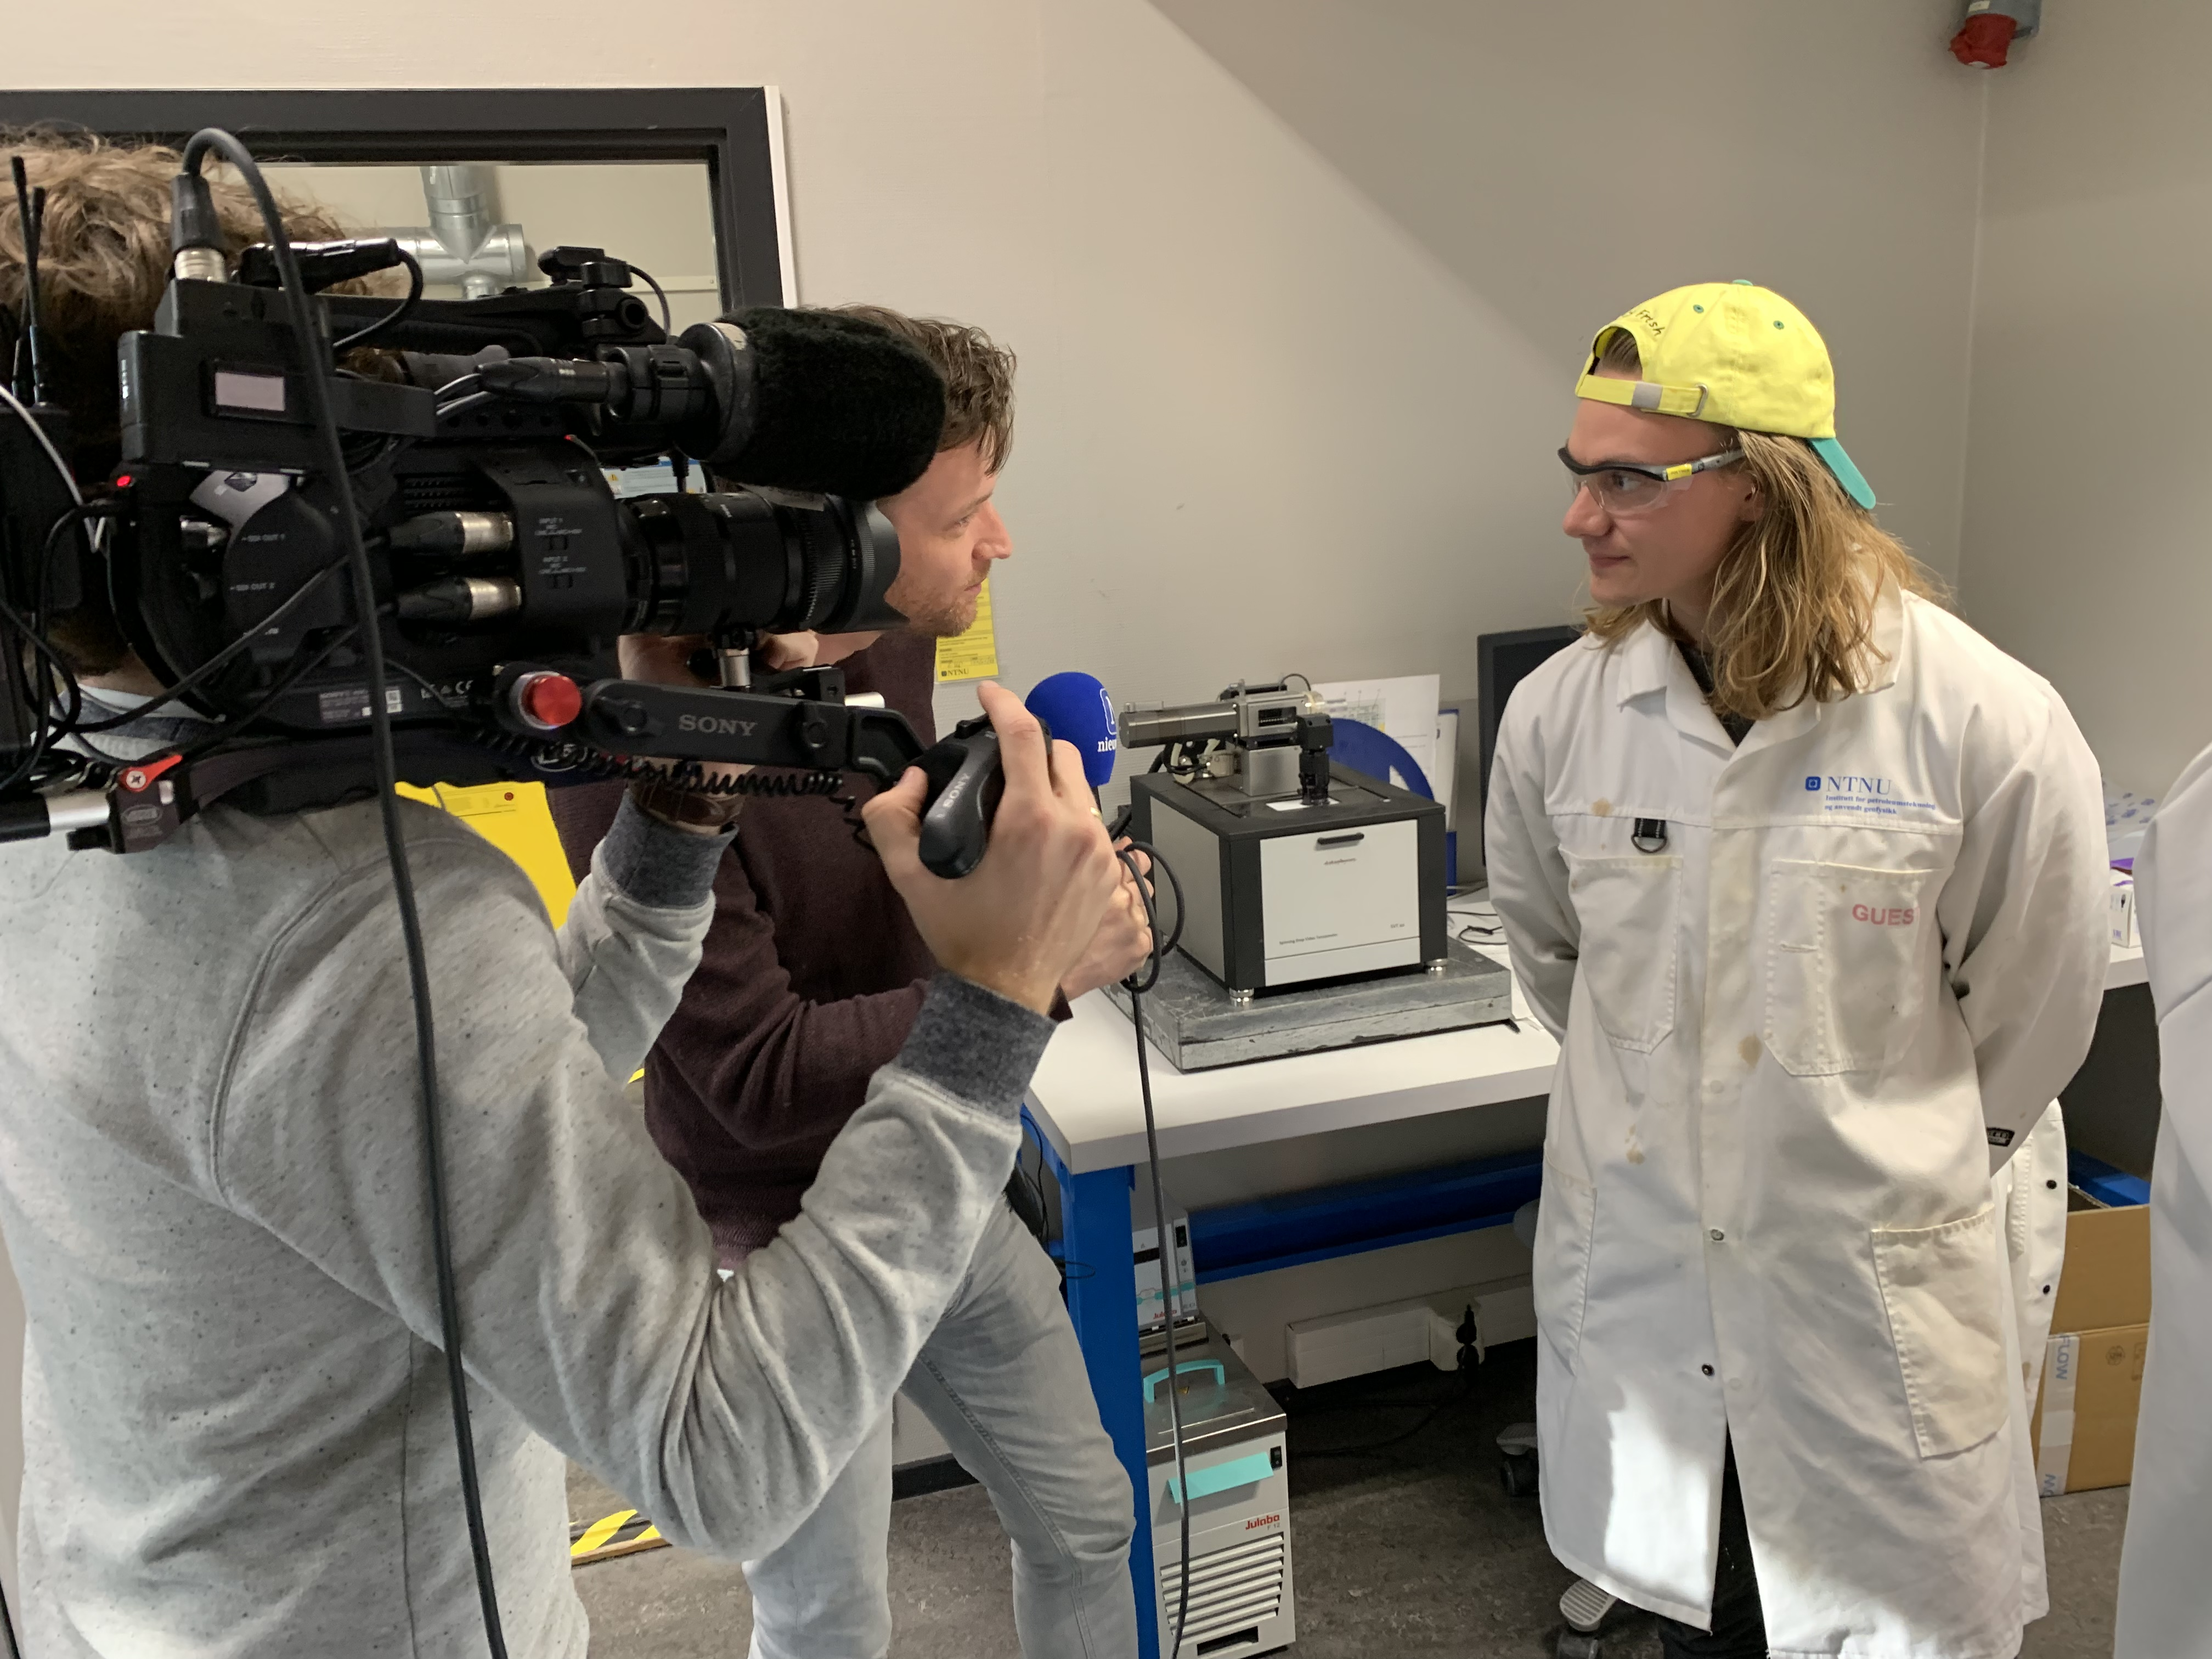 Visit from Dutch Television